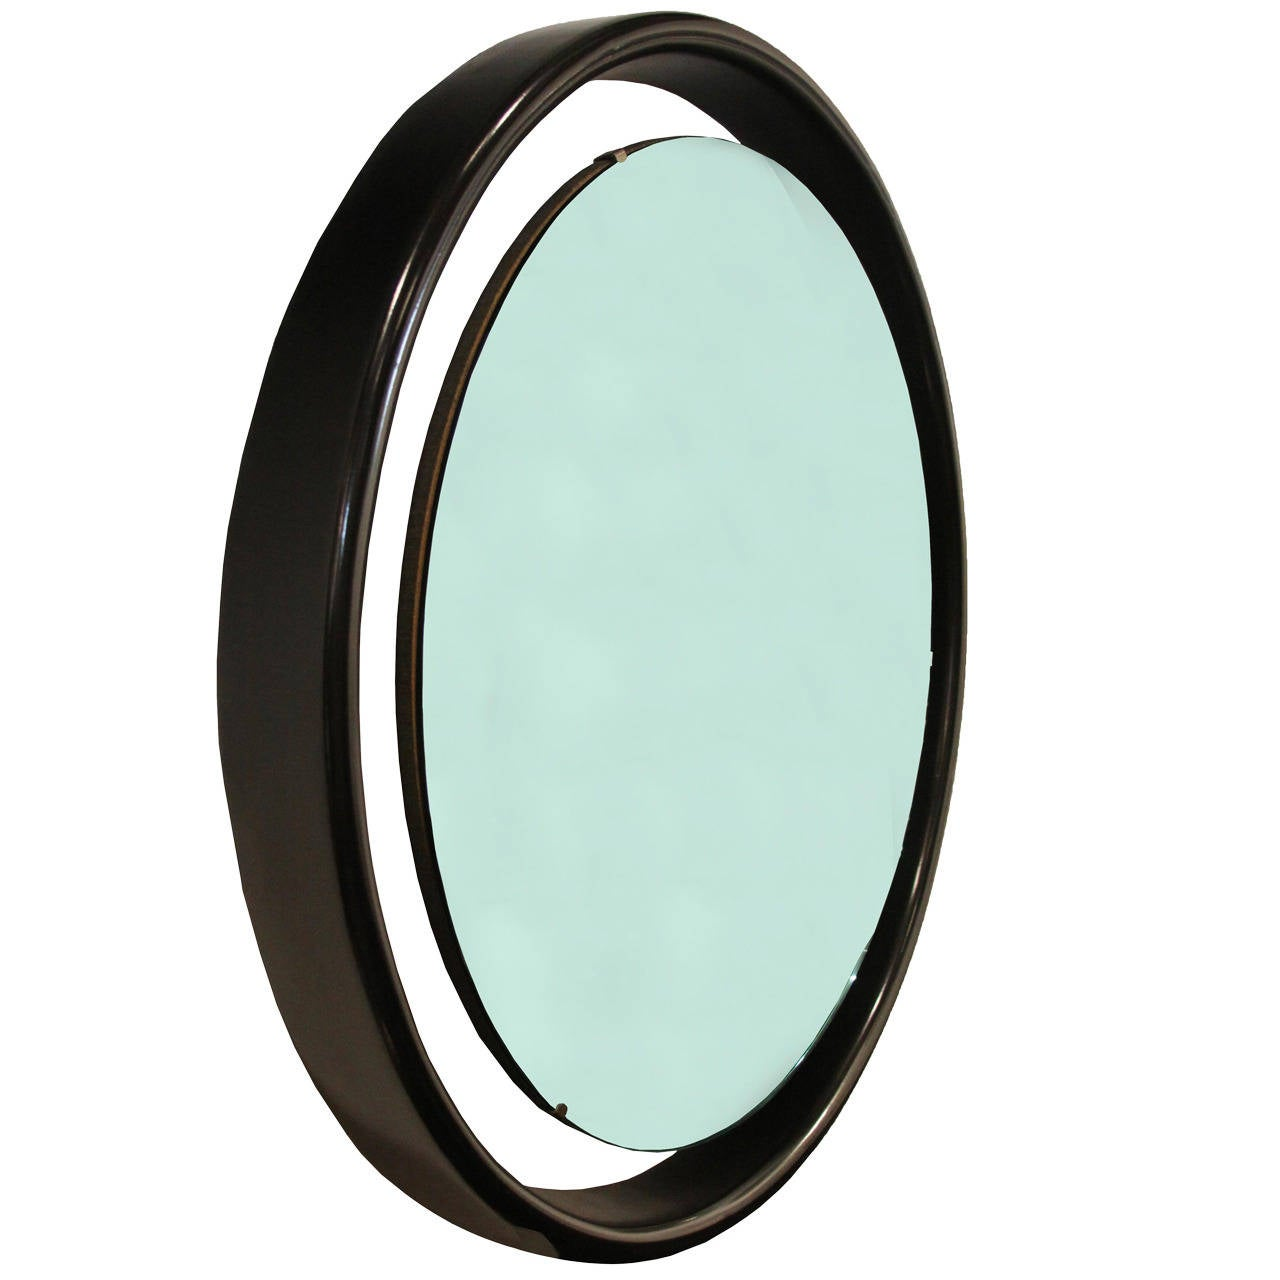 Floating round mirror with black frame for sale at 1stdibs Round framed mirror